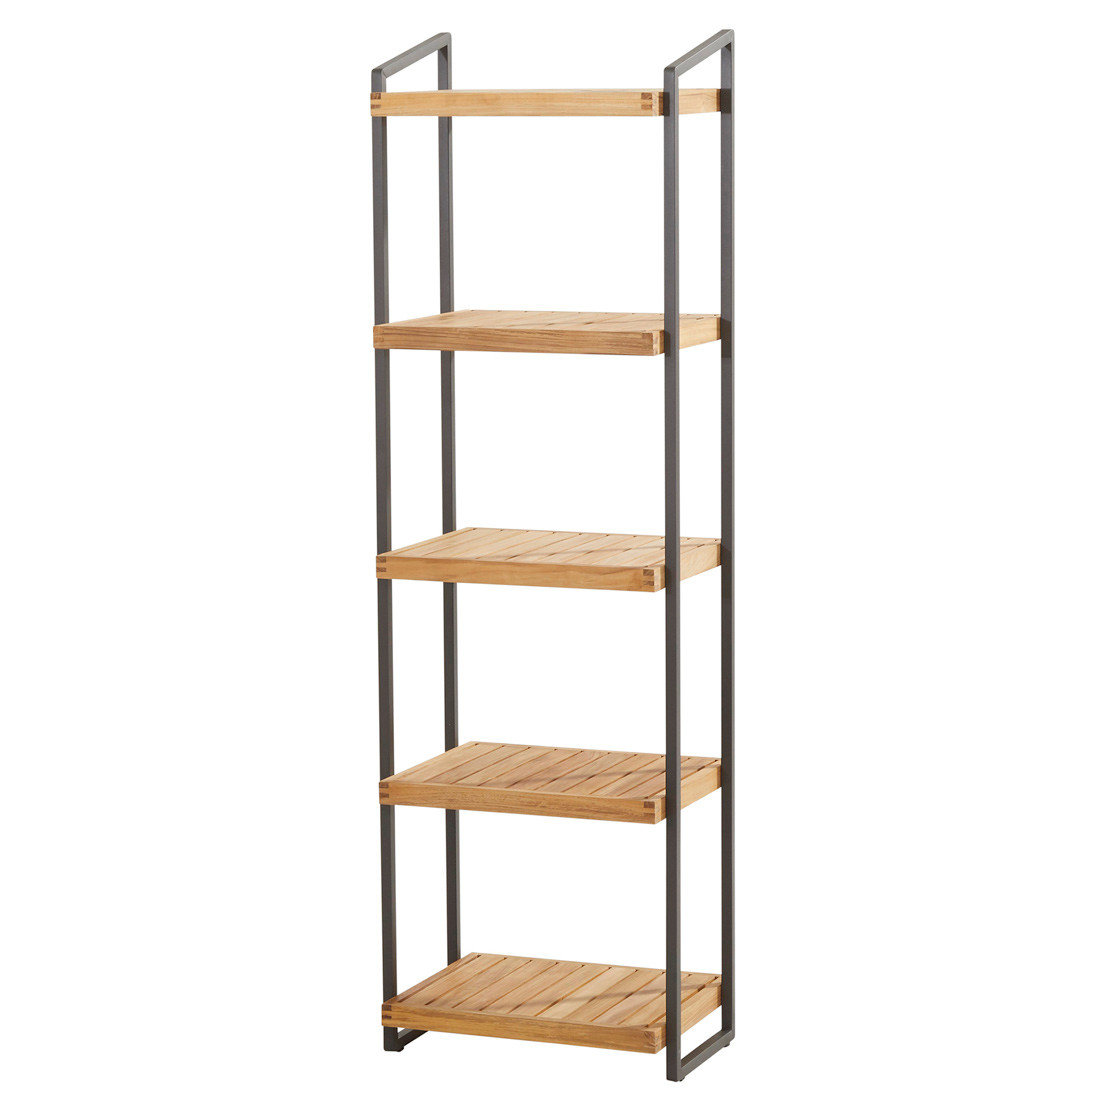 Rack with 5 shelves 50x40x175cm